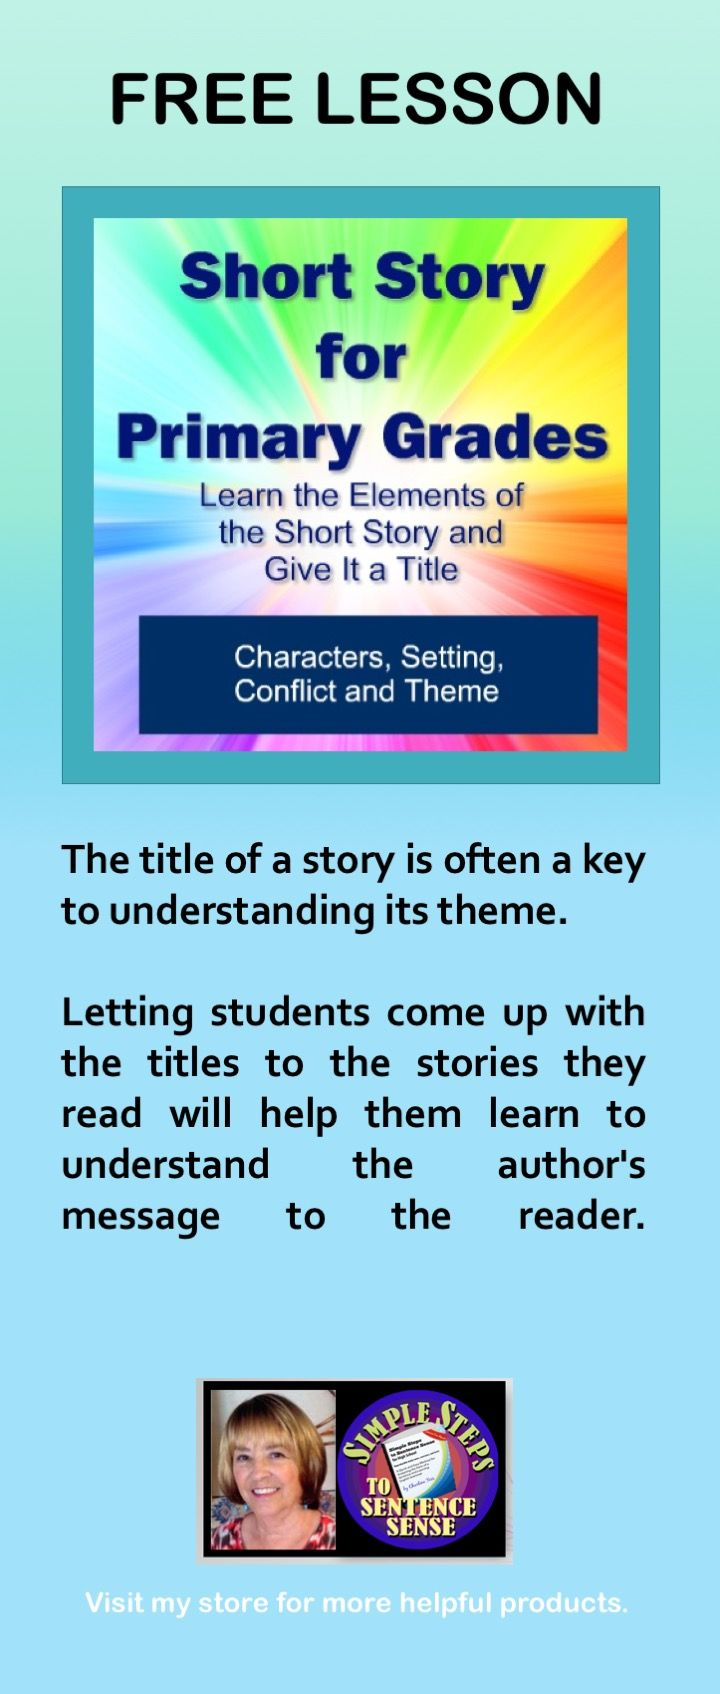 13 best Elementary Writing images on Pinterest | Learning resources ...